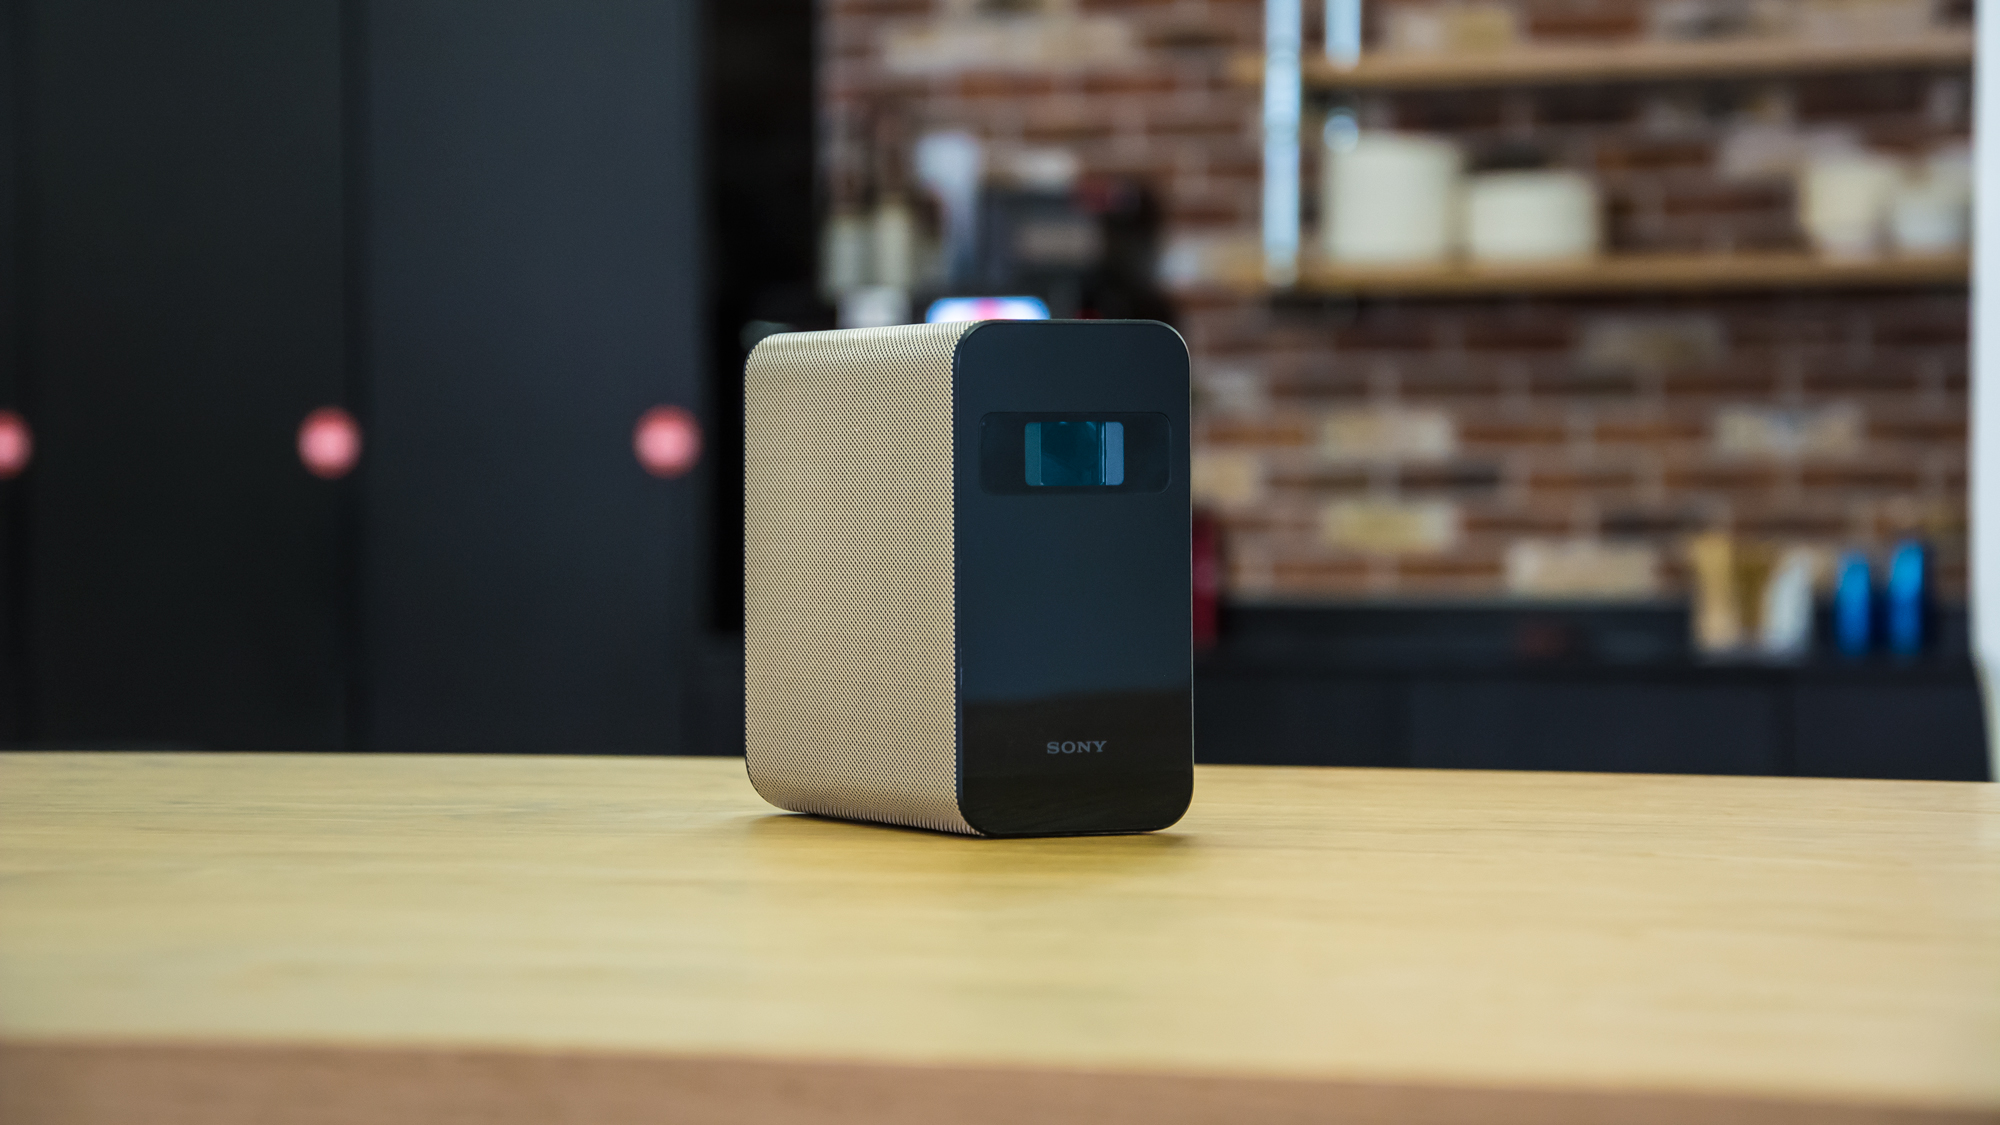 sony xperia touch review an innovative android box with a projector for a screen expert reviews. Black Bedroom Furniture Sets. Home Design Ideas